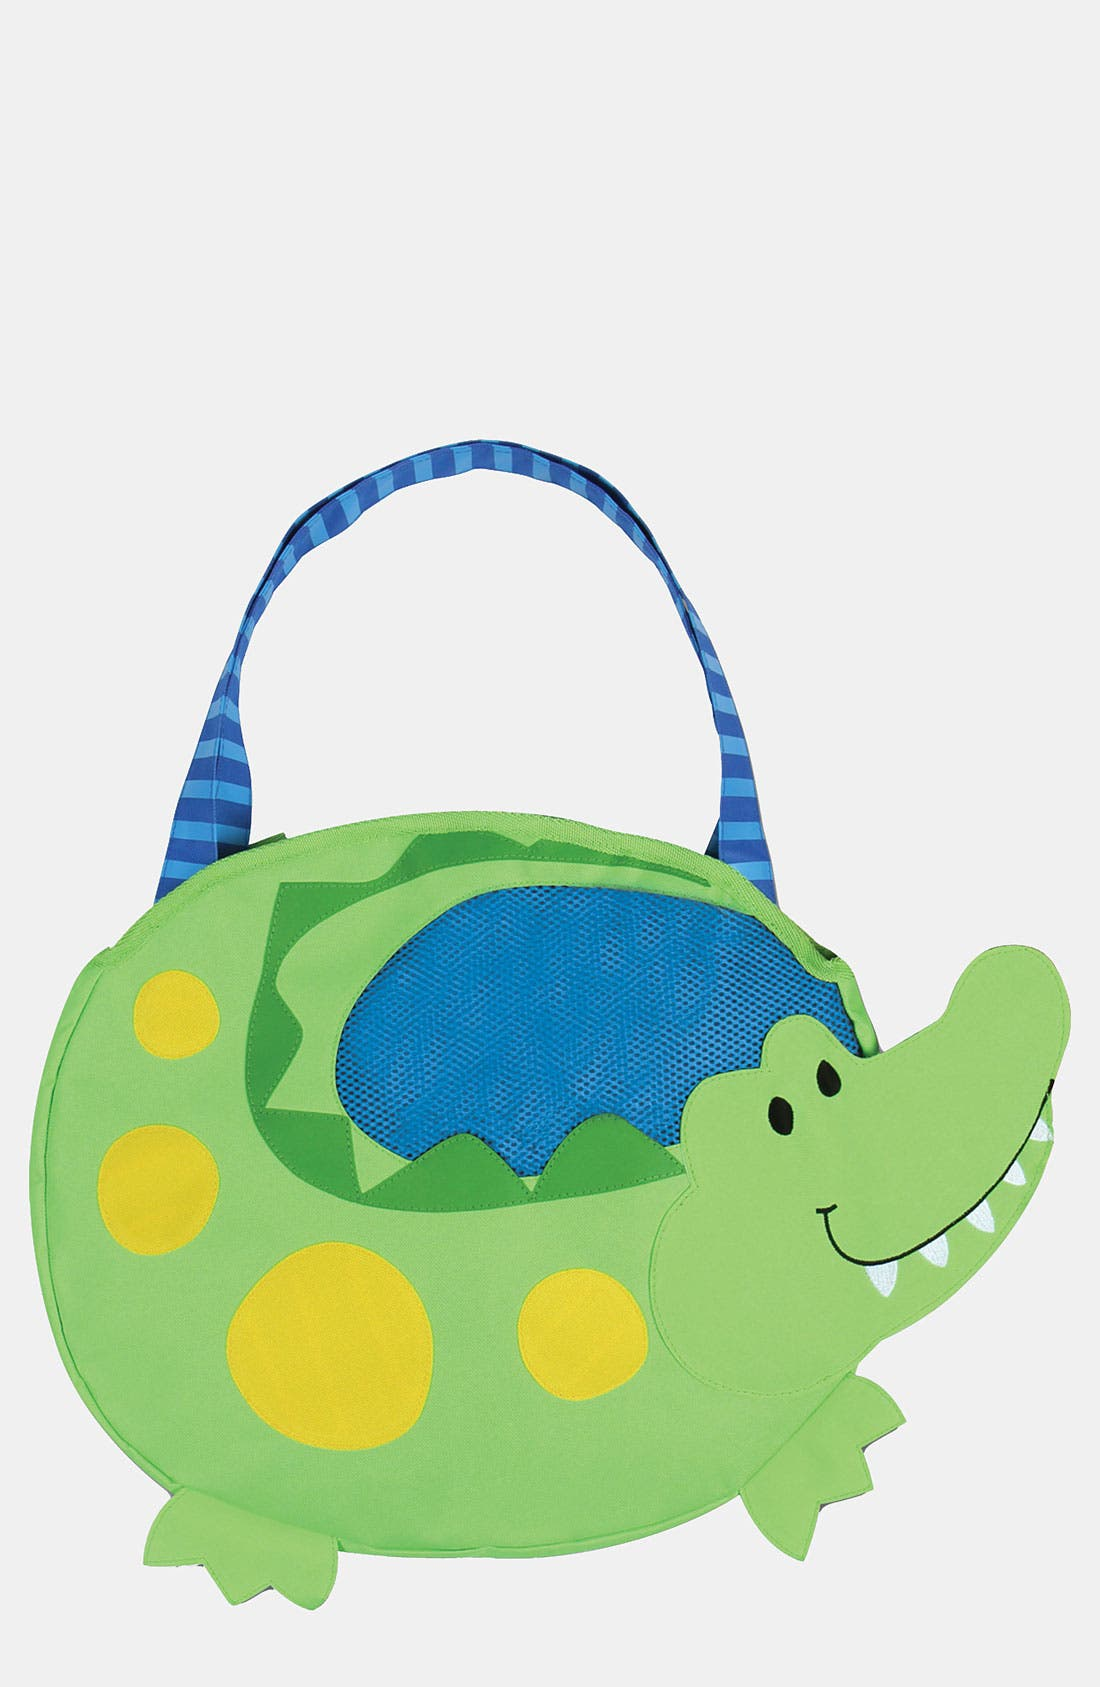 Alternate Image 1 Selected - Stephen Joseph 'Alligator' Beach Tote & Toys